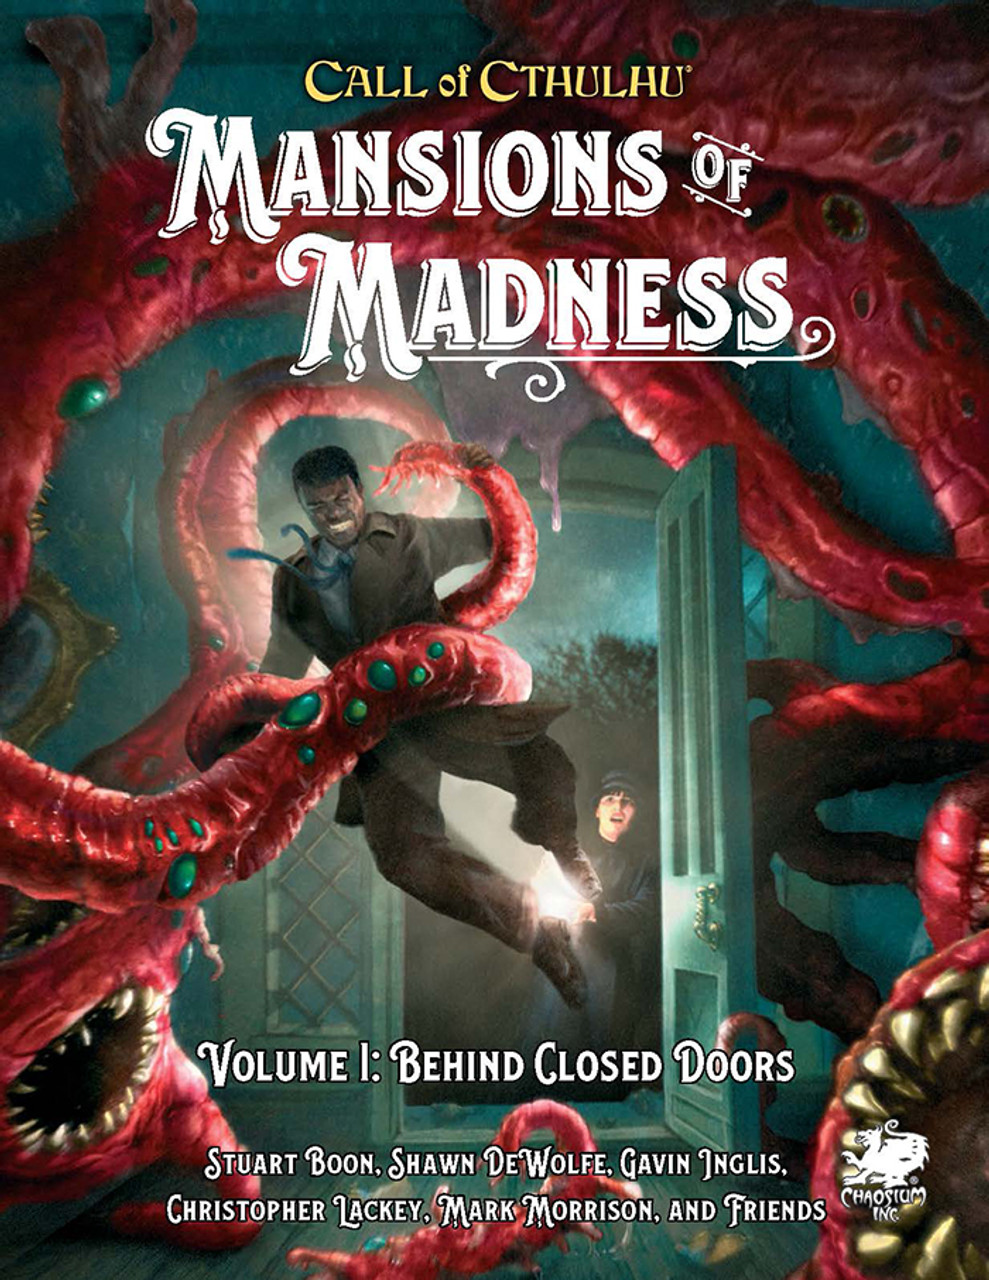 Mansions of Madness Vol. 1: Behind Closed Doors: Call of Cthulhu RPG -  Chaosium